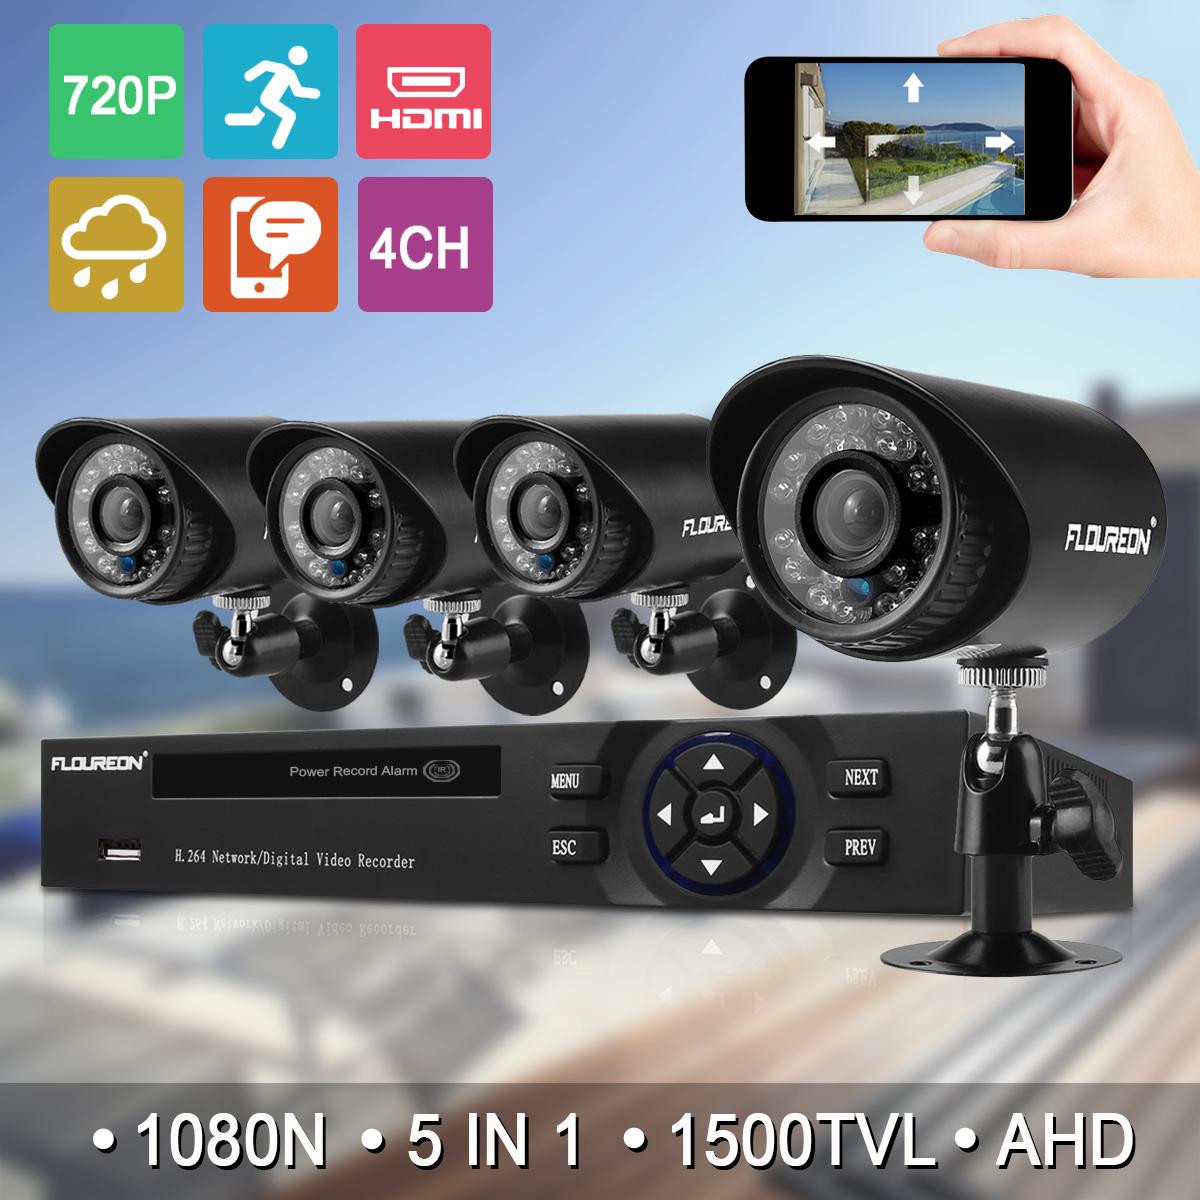 Floureon 4CH House Camera System DVR 1080N AHD + 4 Outdoor/Indoor Bullet Home Security Cameras 1500TVL 720P 1.0MP AHD Resolution Night Version for House/Apartment/Office